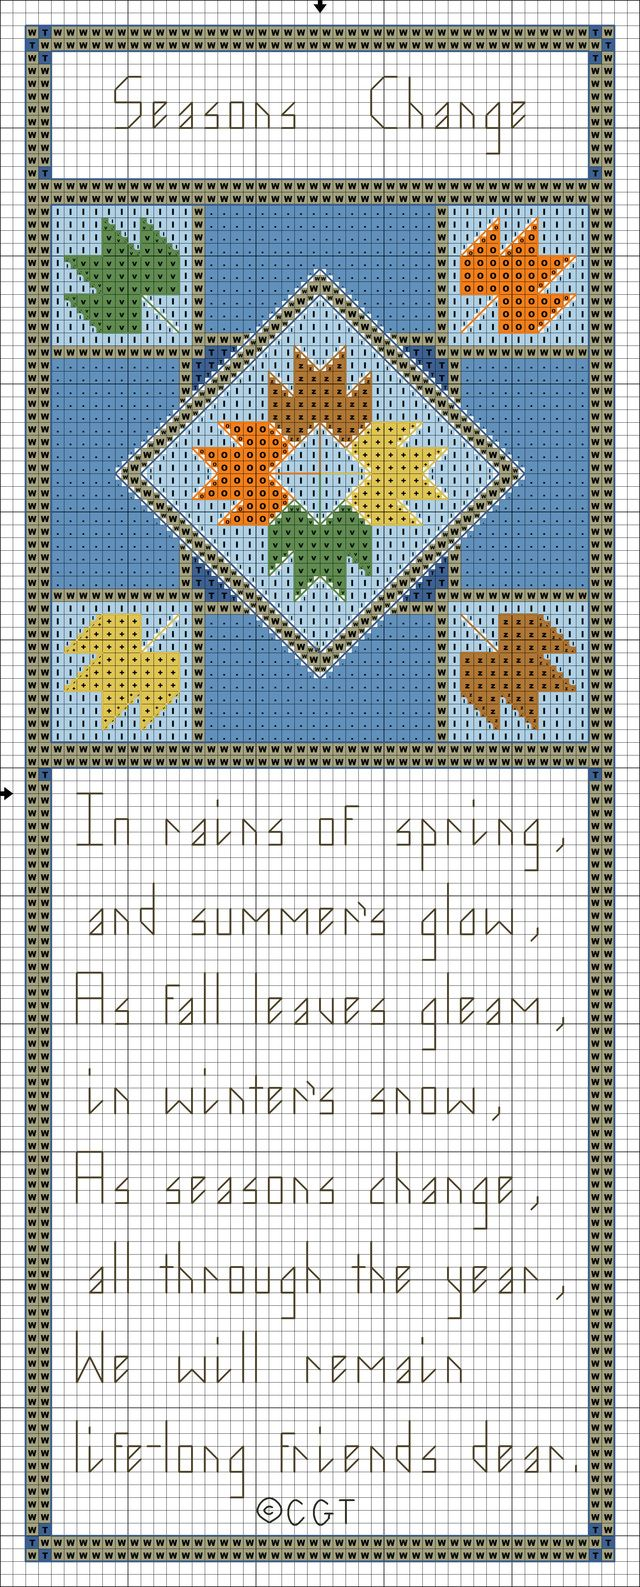 299 best images about free cross stitch patterns on for Cross stitch patterns free printable